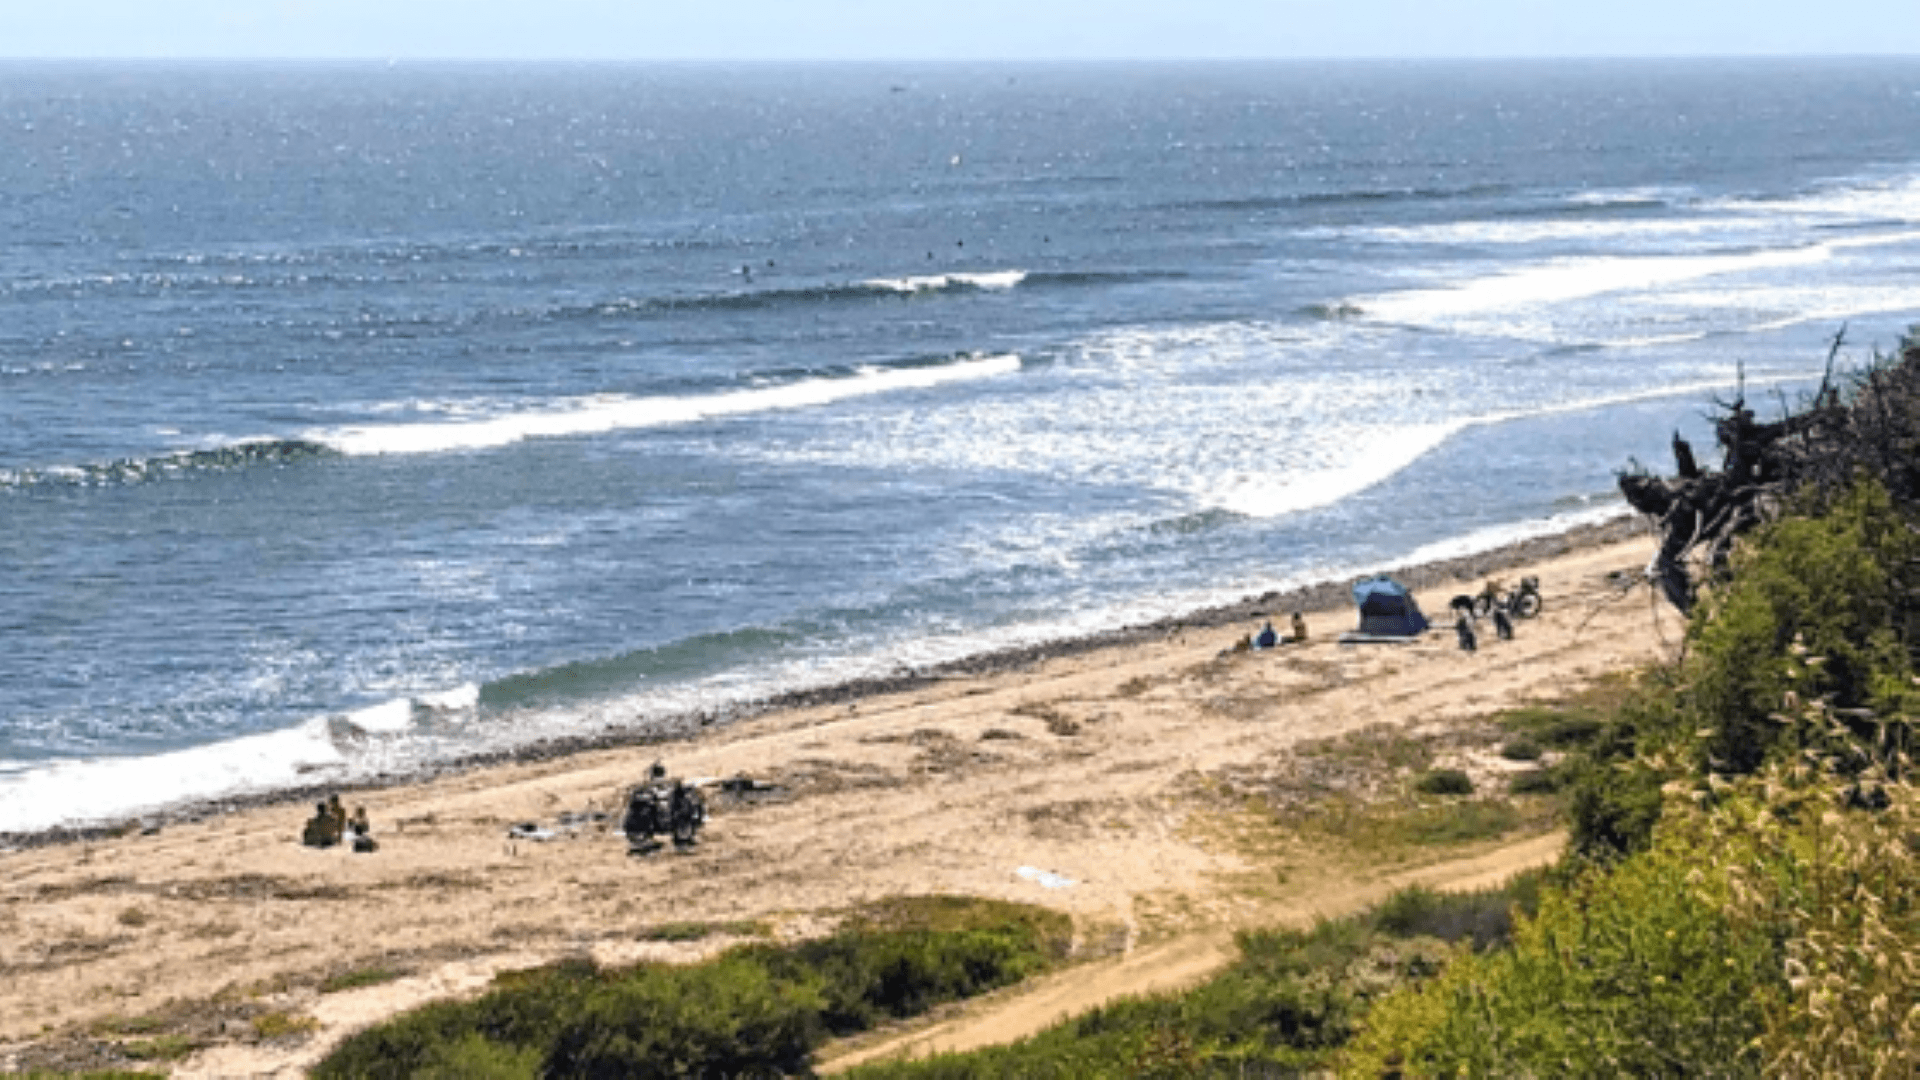 Middles trestles san onofre state beach shark sightings